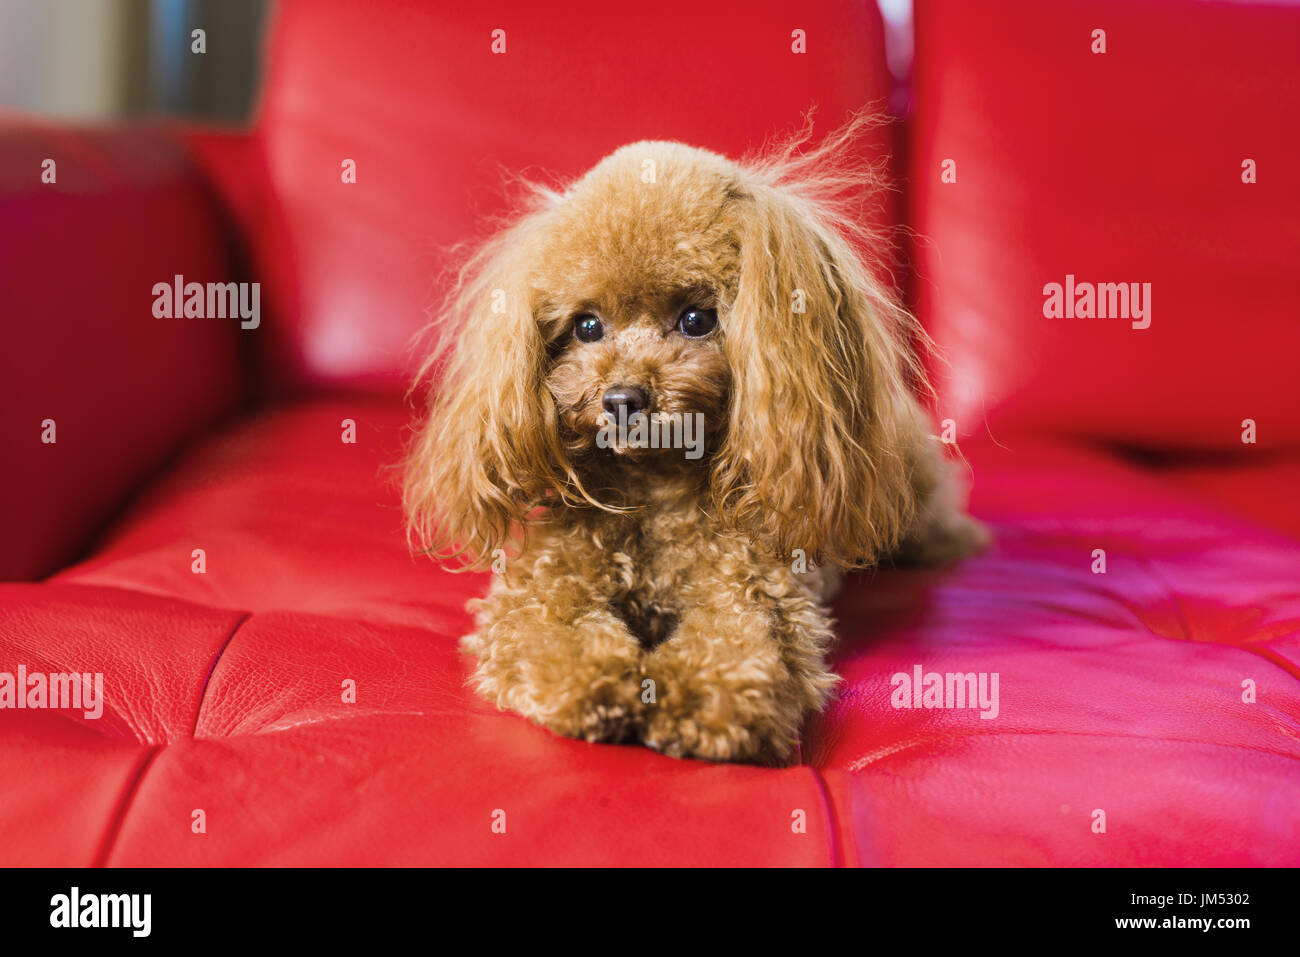 Toy poodle lies on the red couch Stock Photo